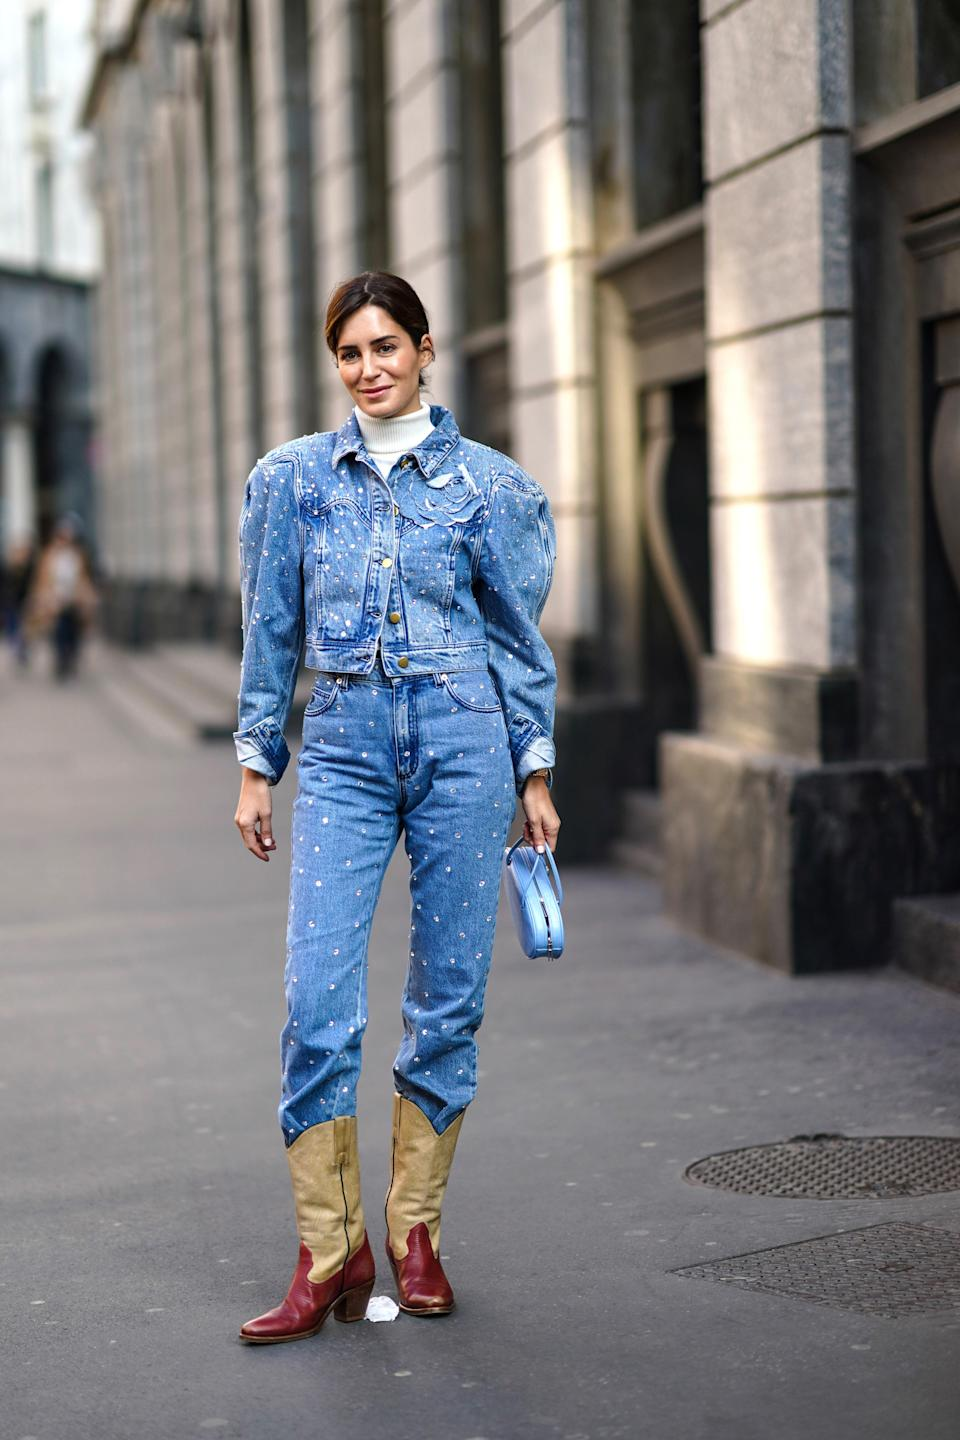 Go all in with a pair of cowboy boots and a classic-looking Canadian tux.